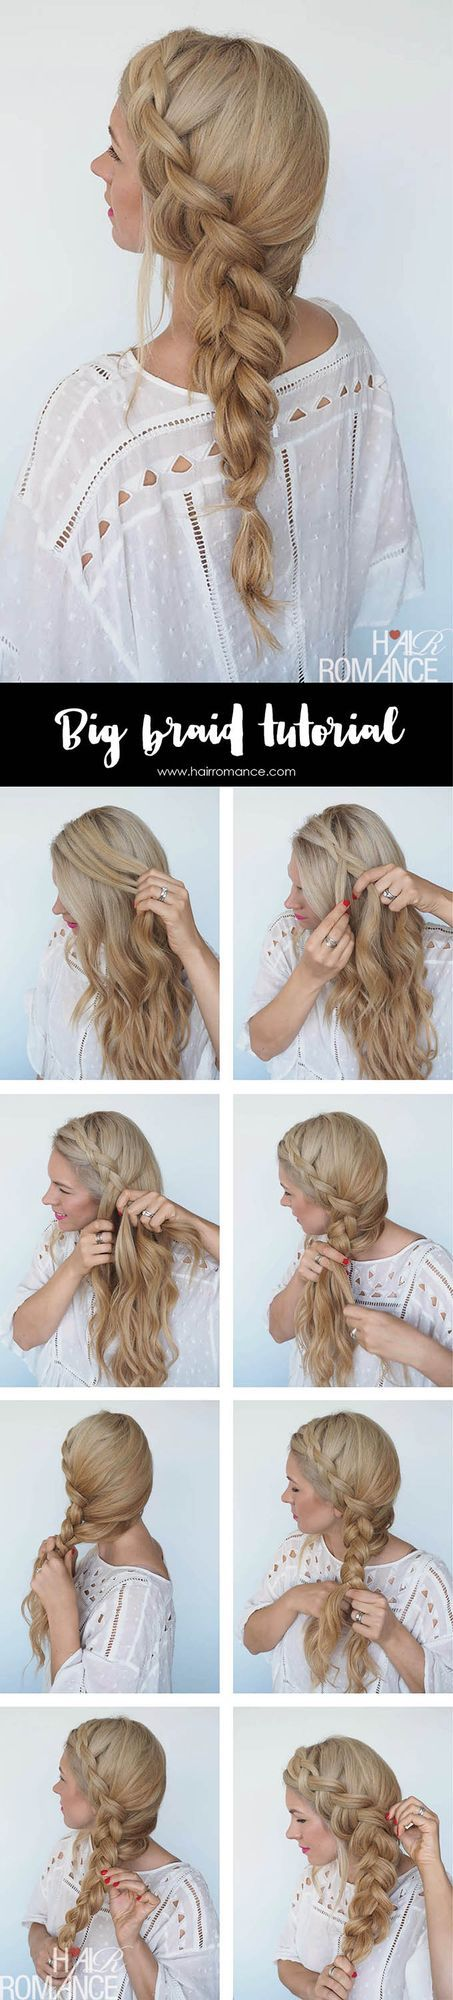 How to style a big side braid instant mermaid hair Chanel lipstick Giveaway